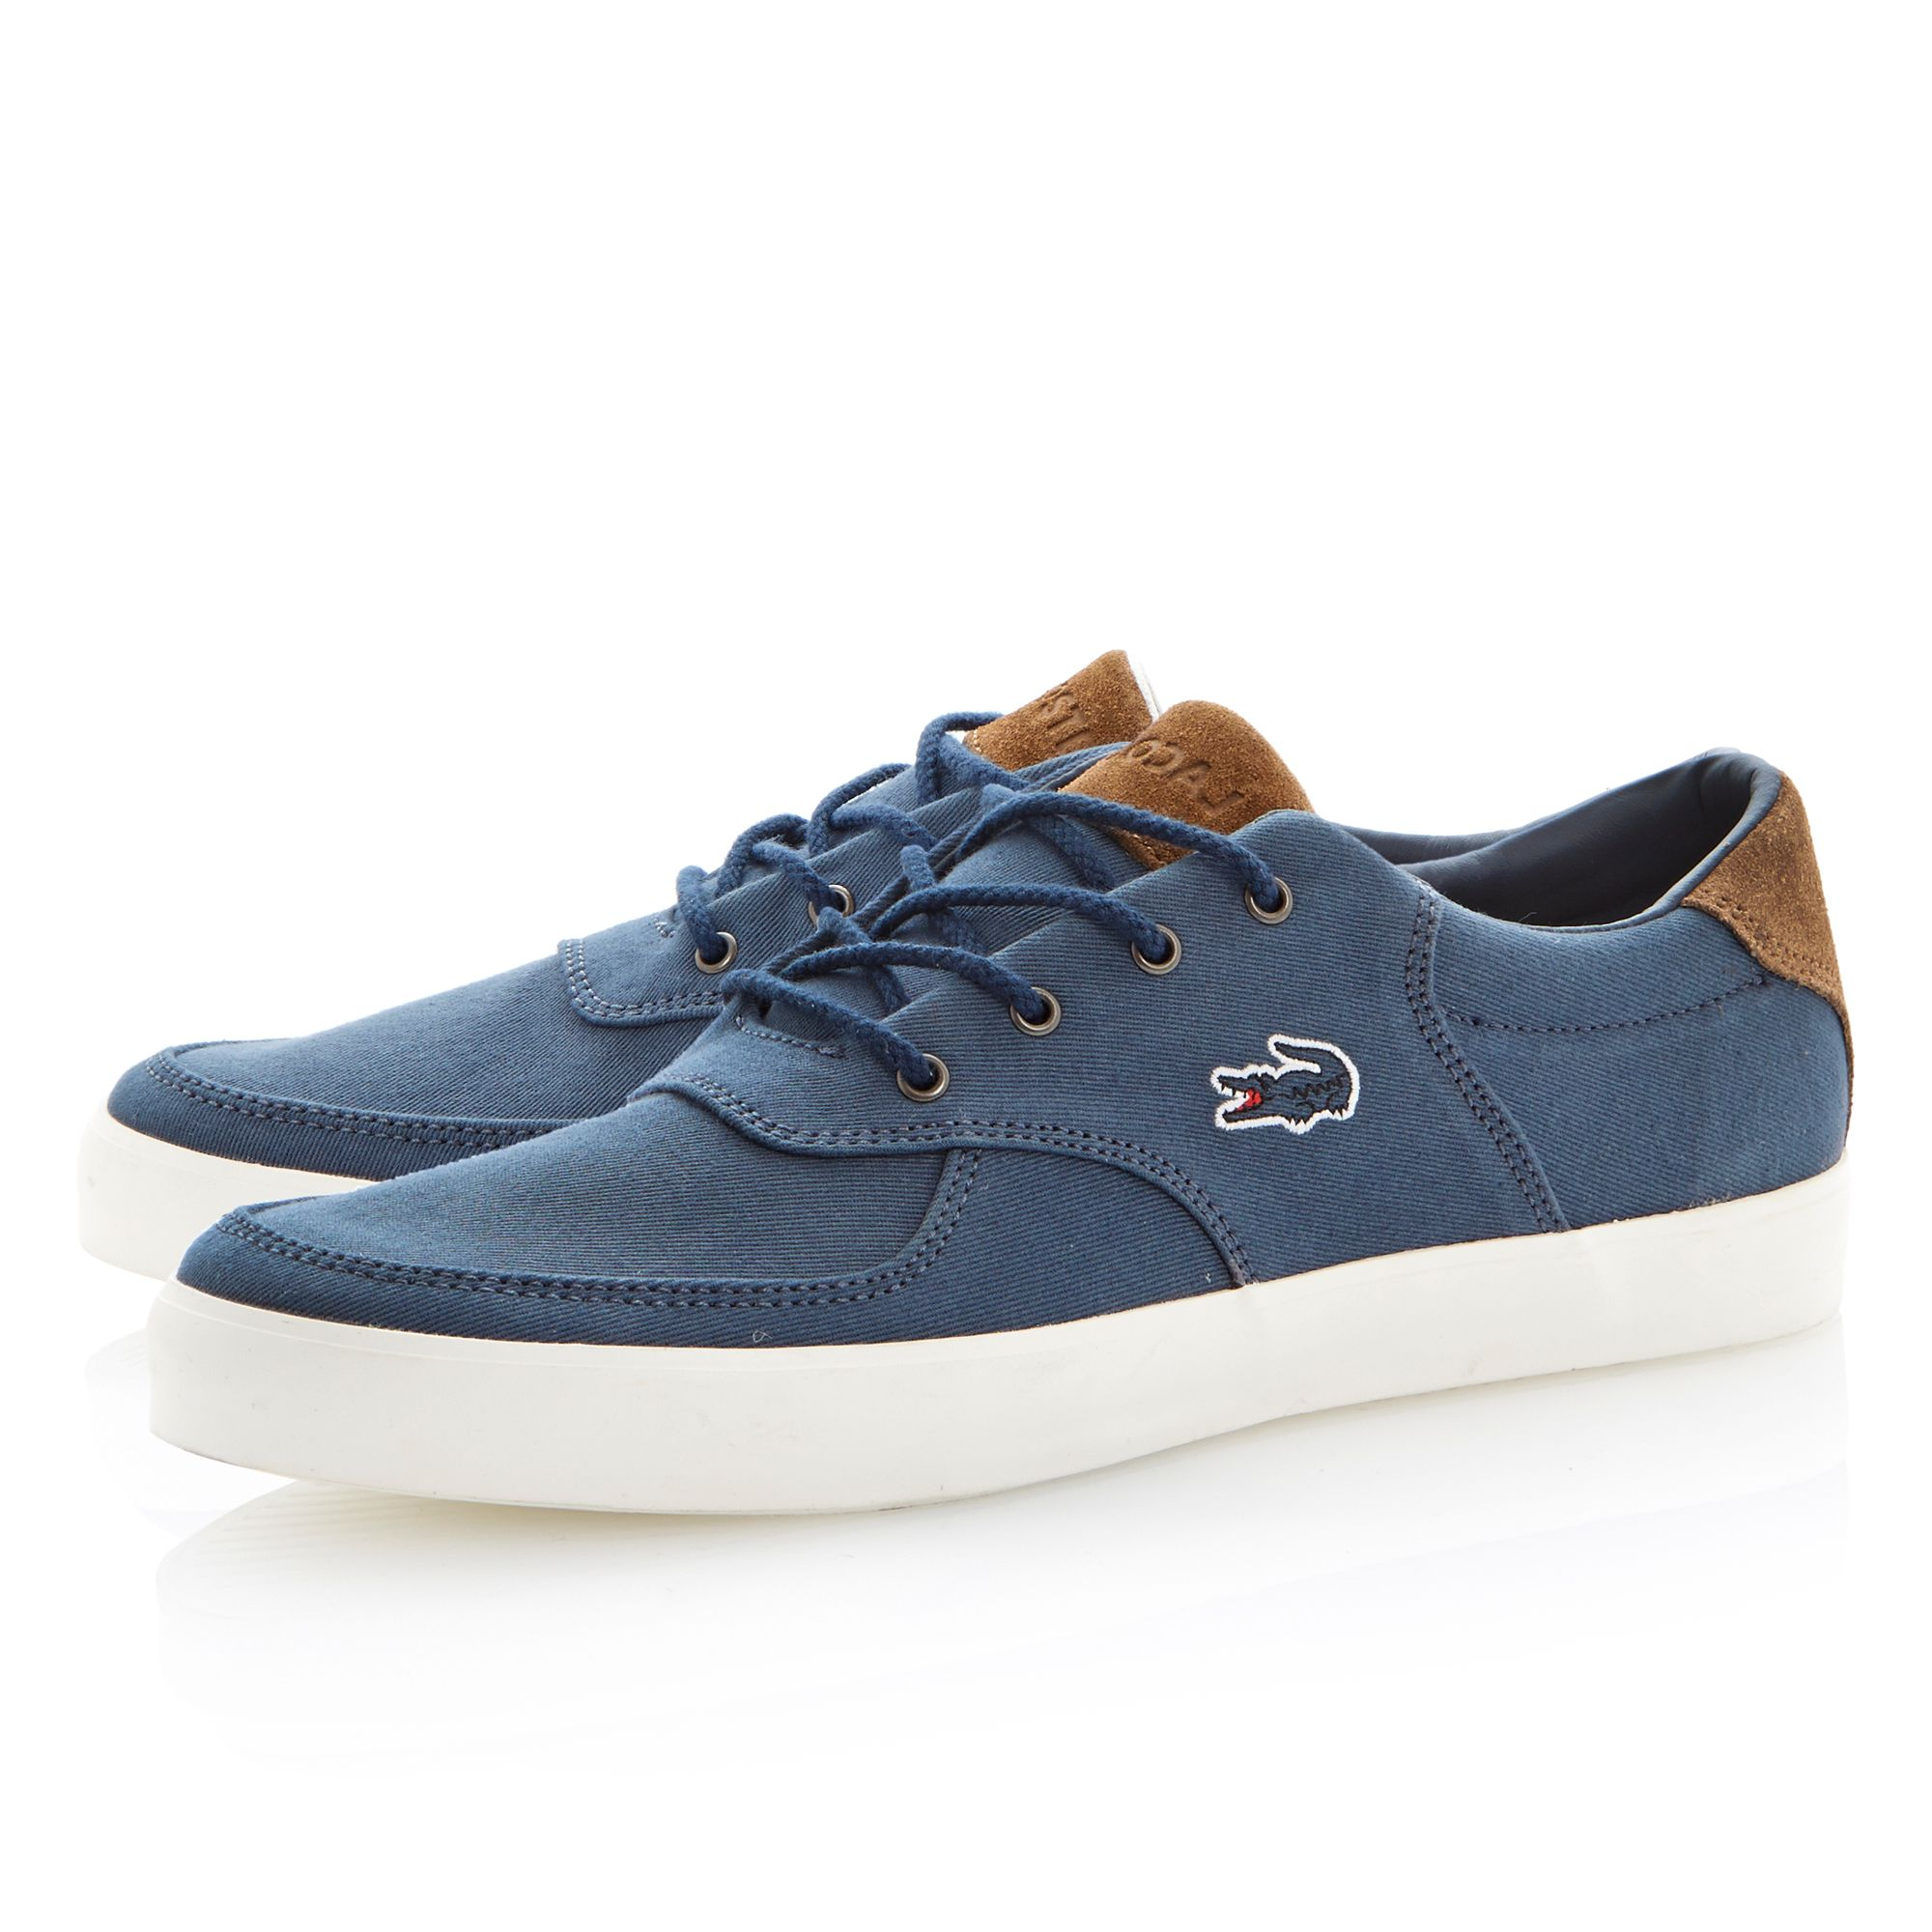 Glendon 8 lace up contrast trainers